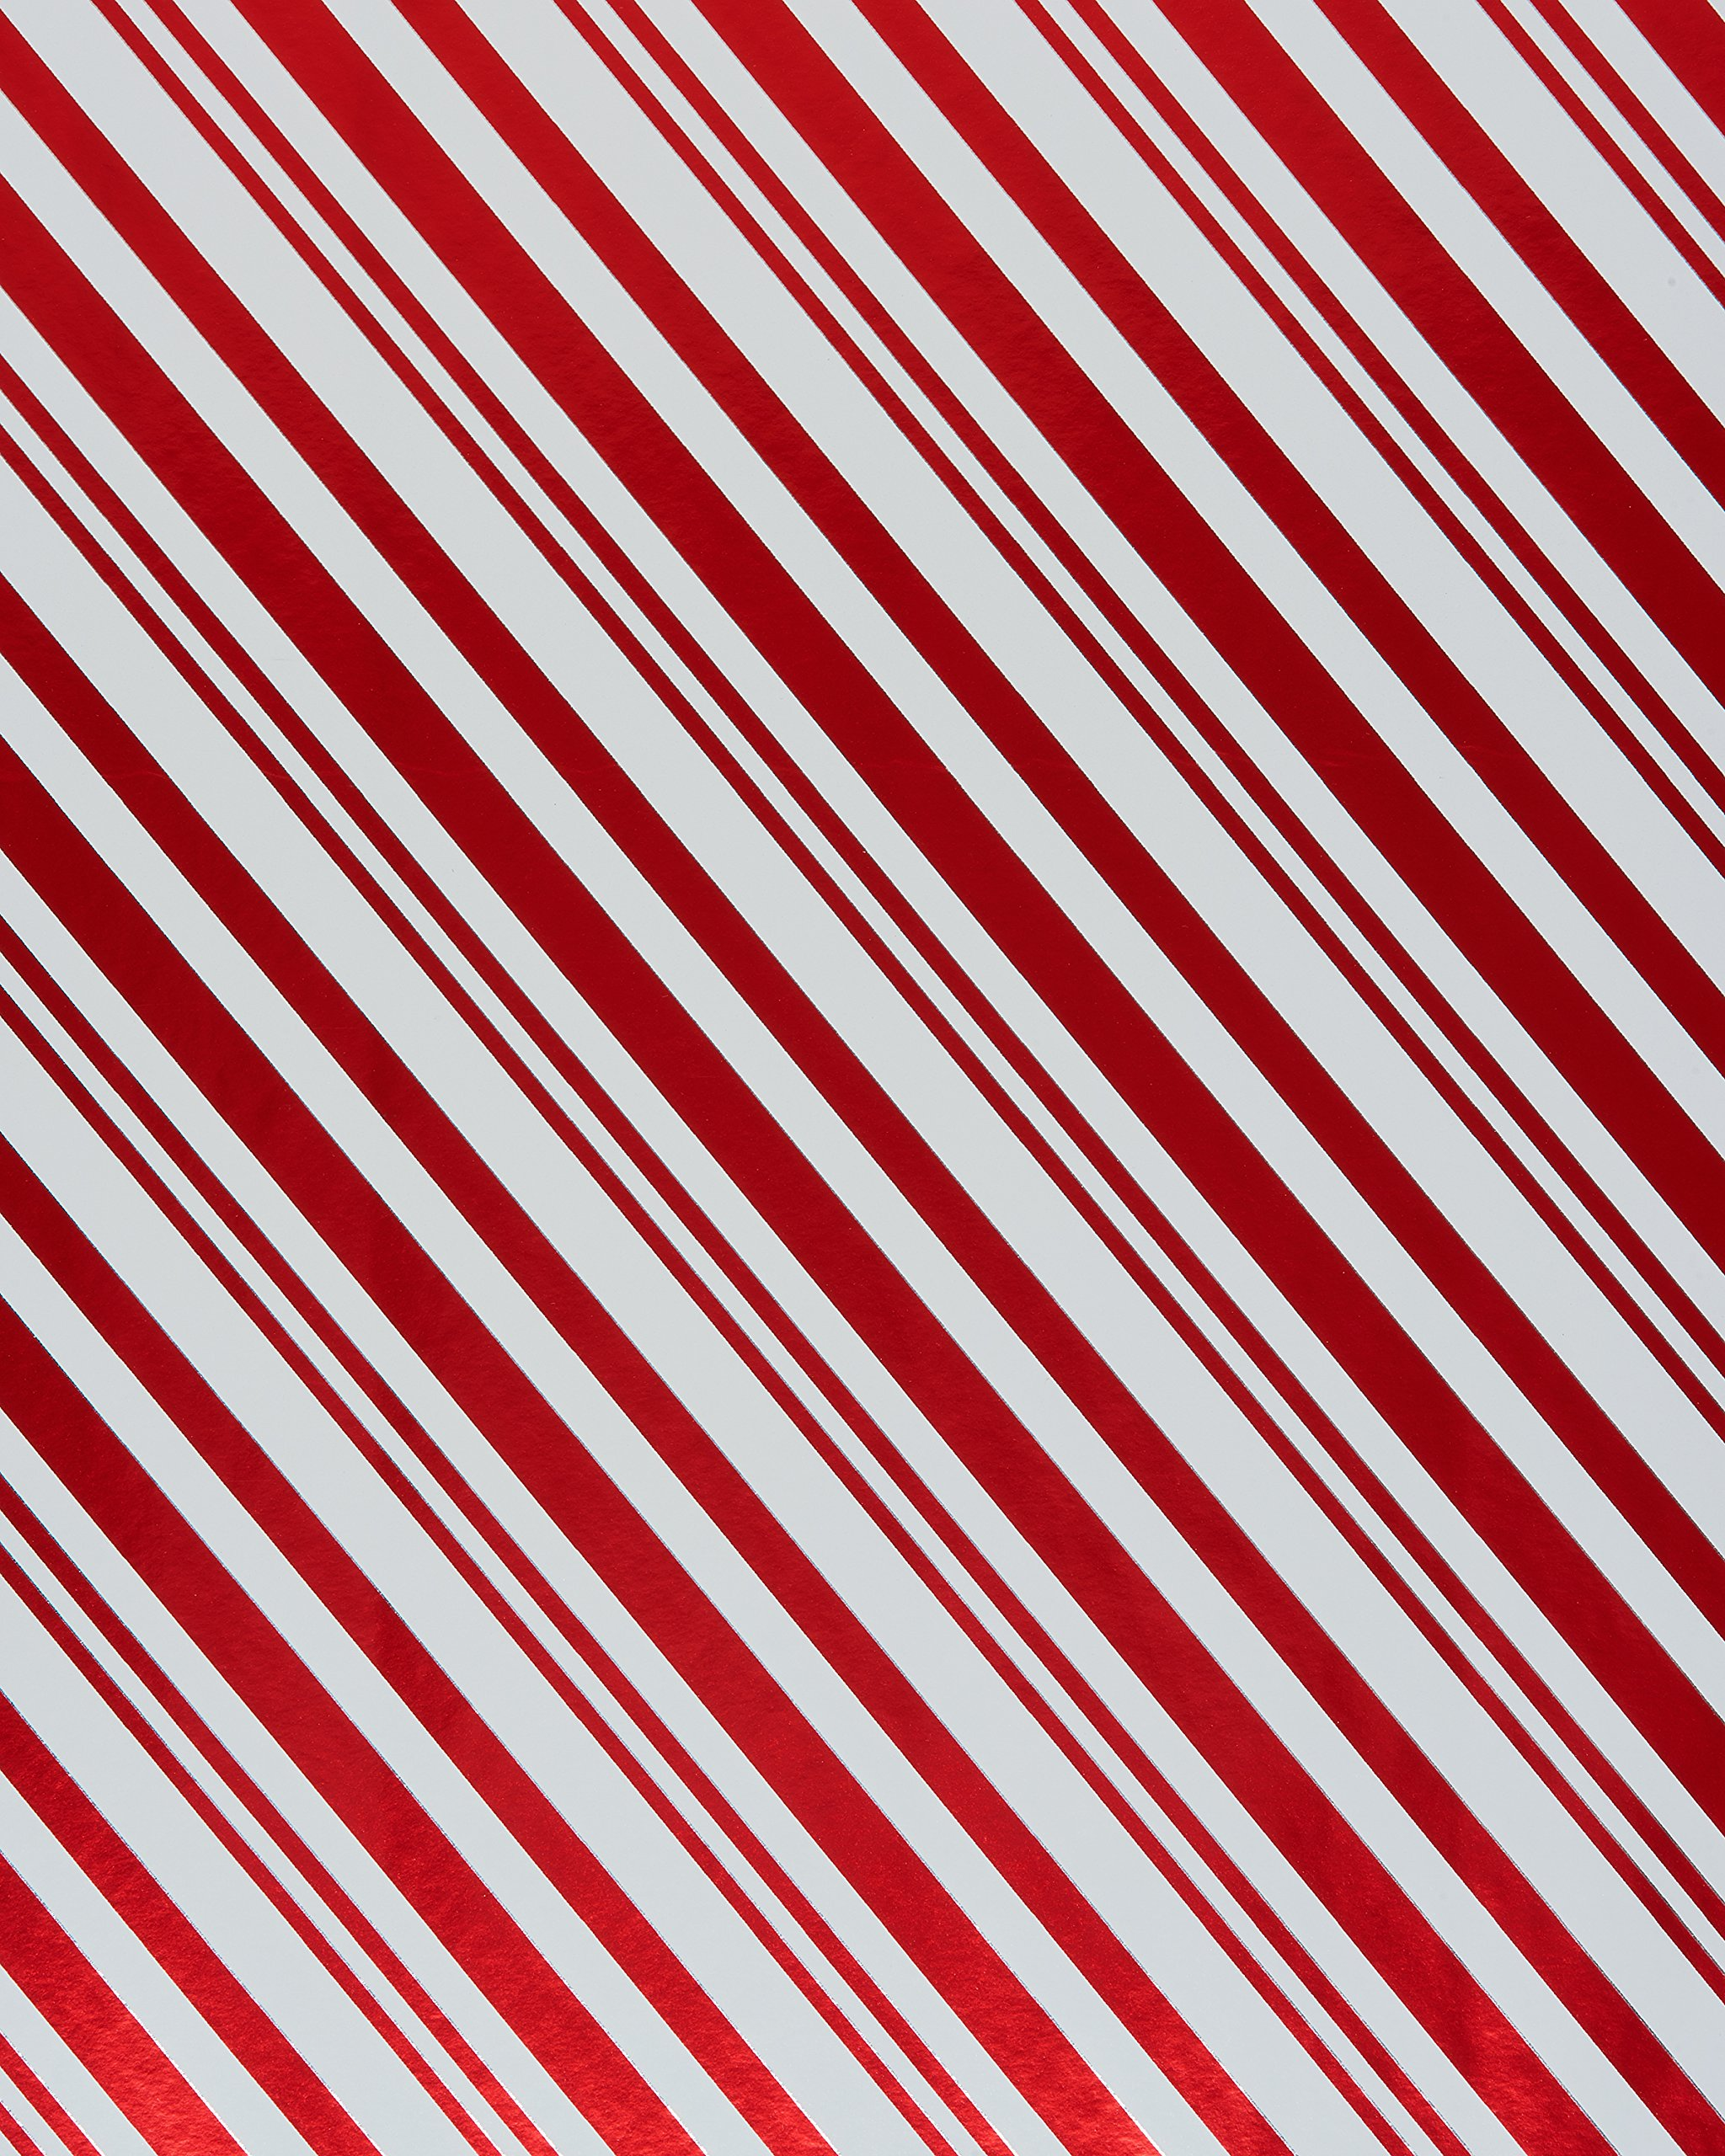 American Greetings Holiday Friends Candy Cane Stripes And Santa